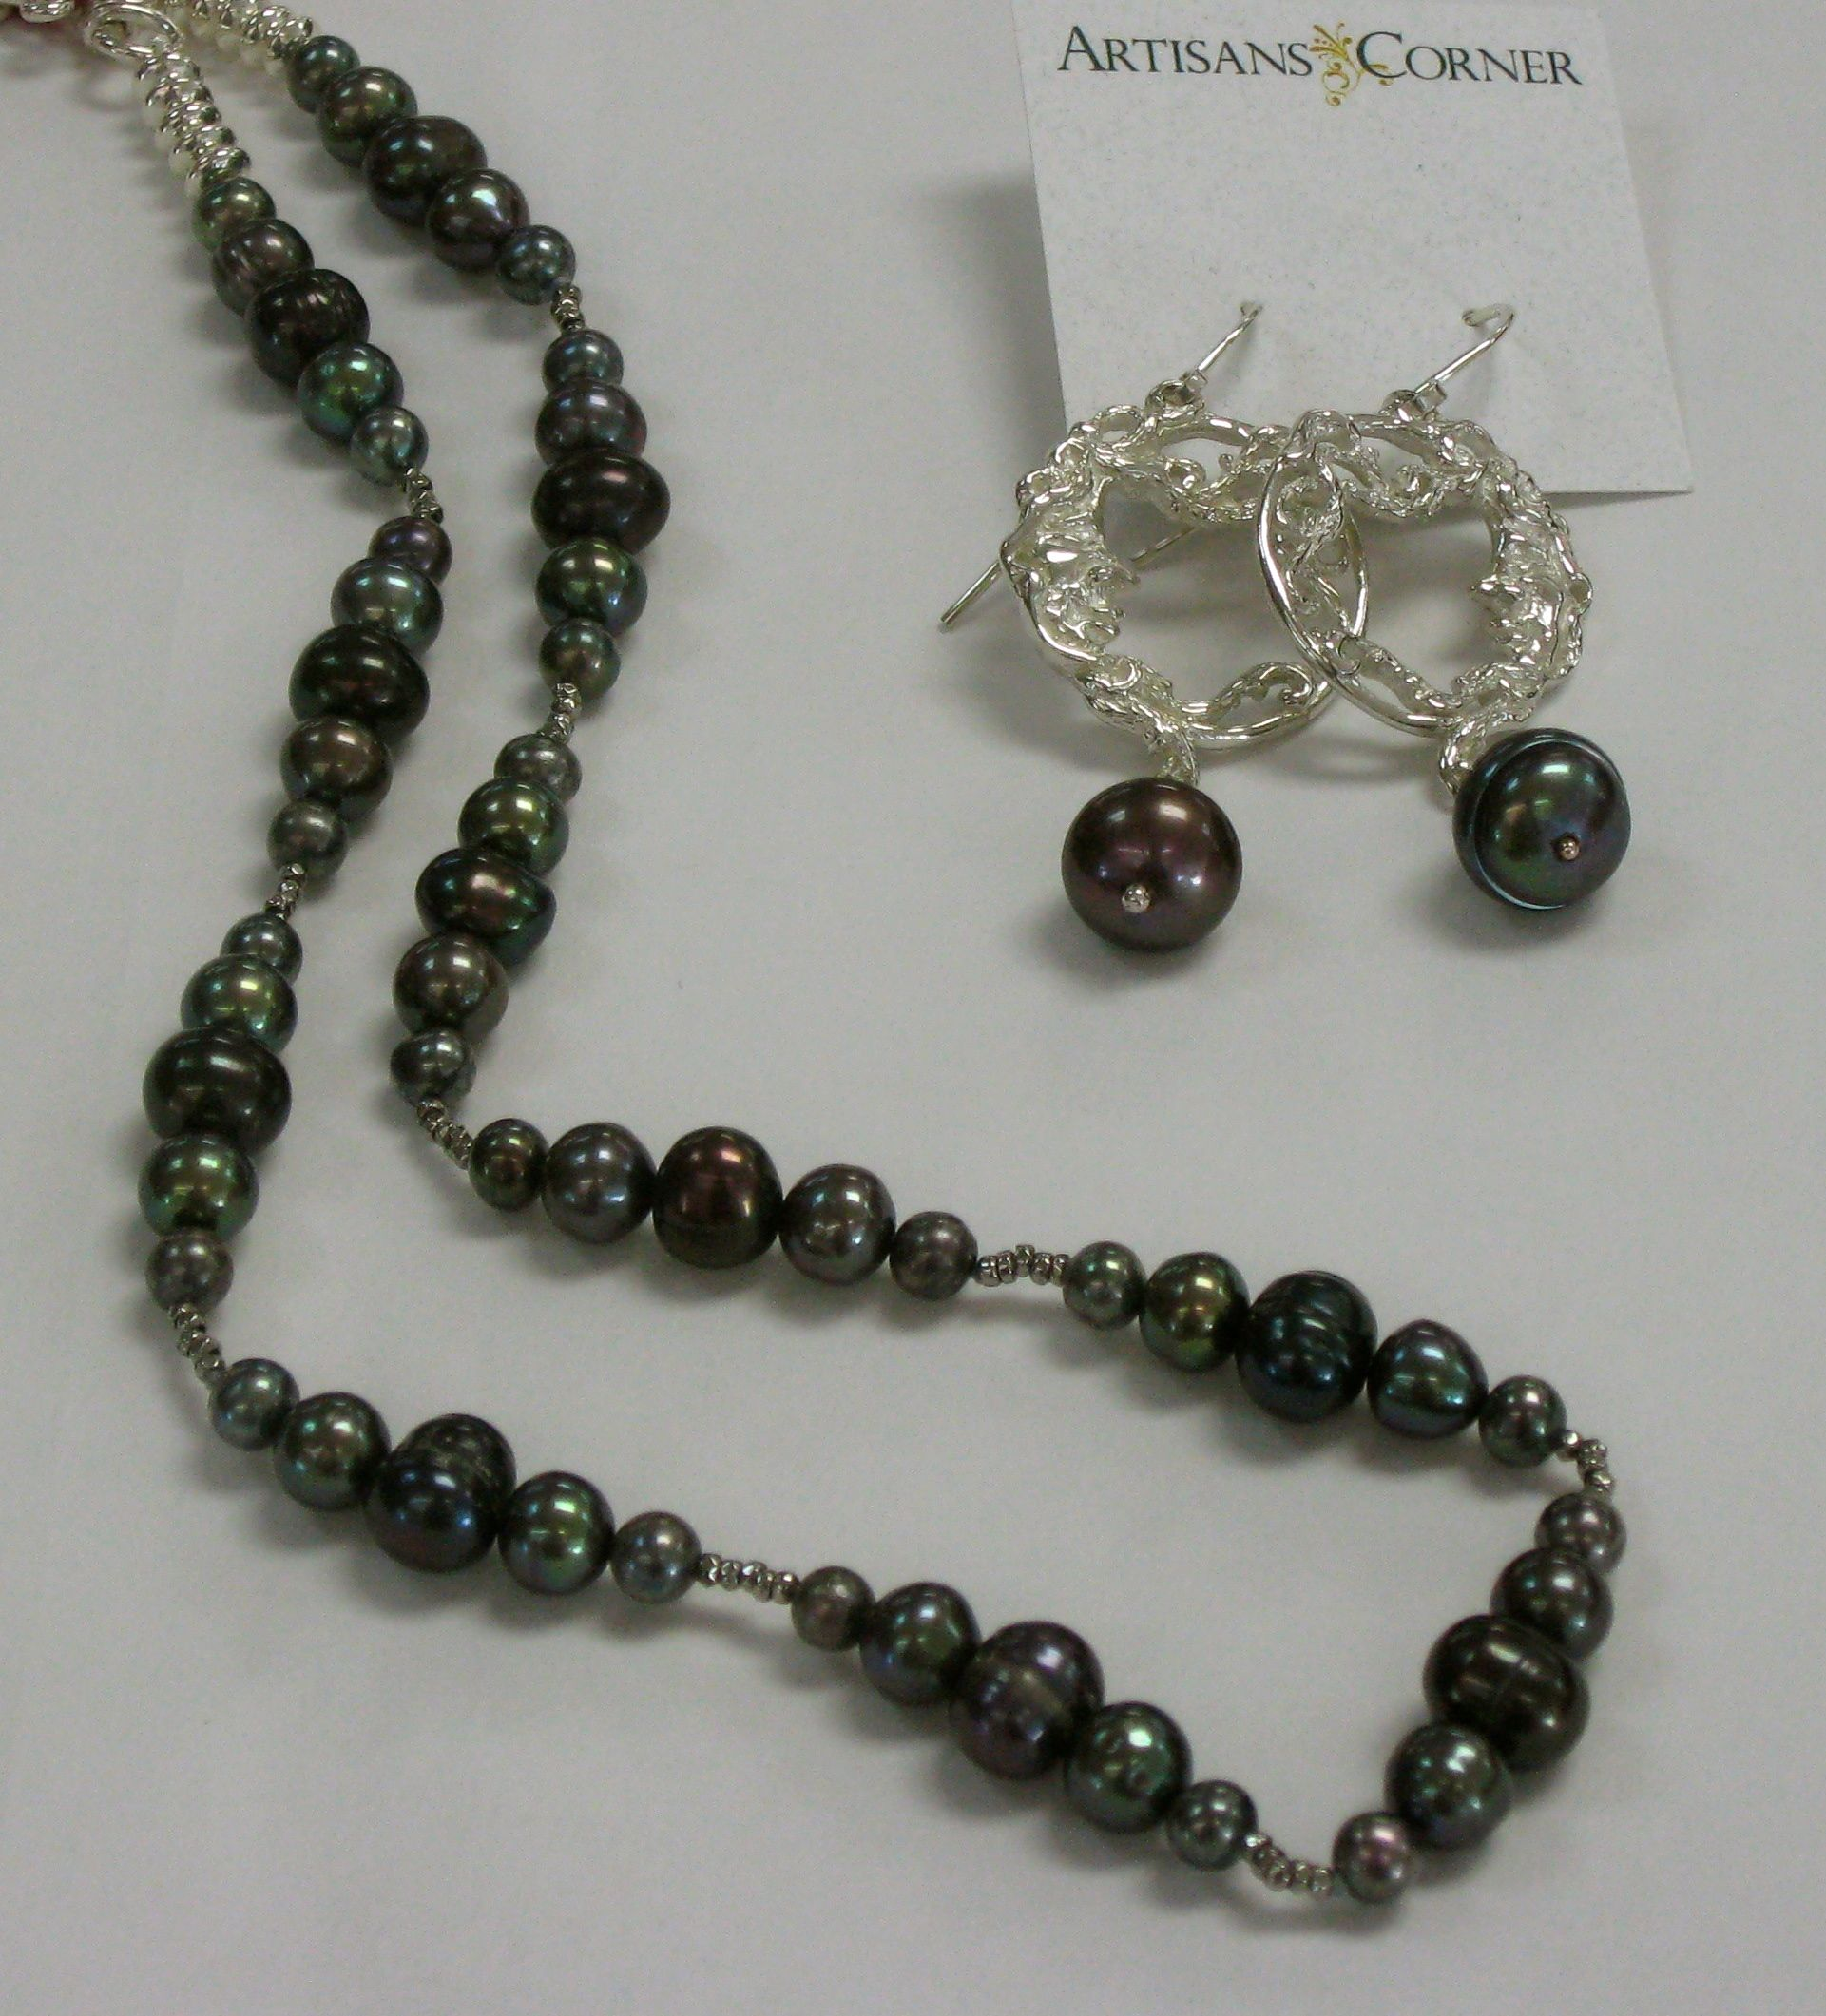 Jack Dokus woman in the moon earrings and Ruth Mary Pollack black pearl necklace.